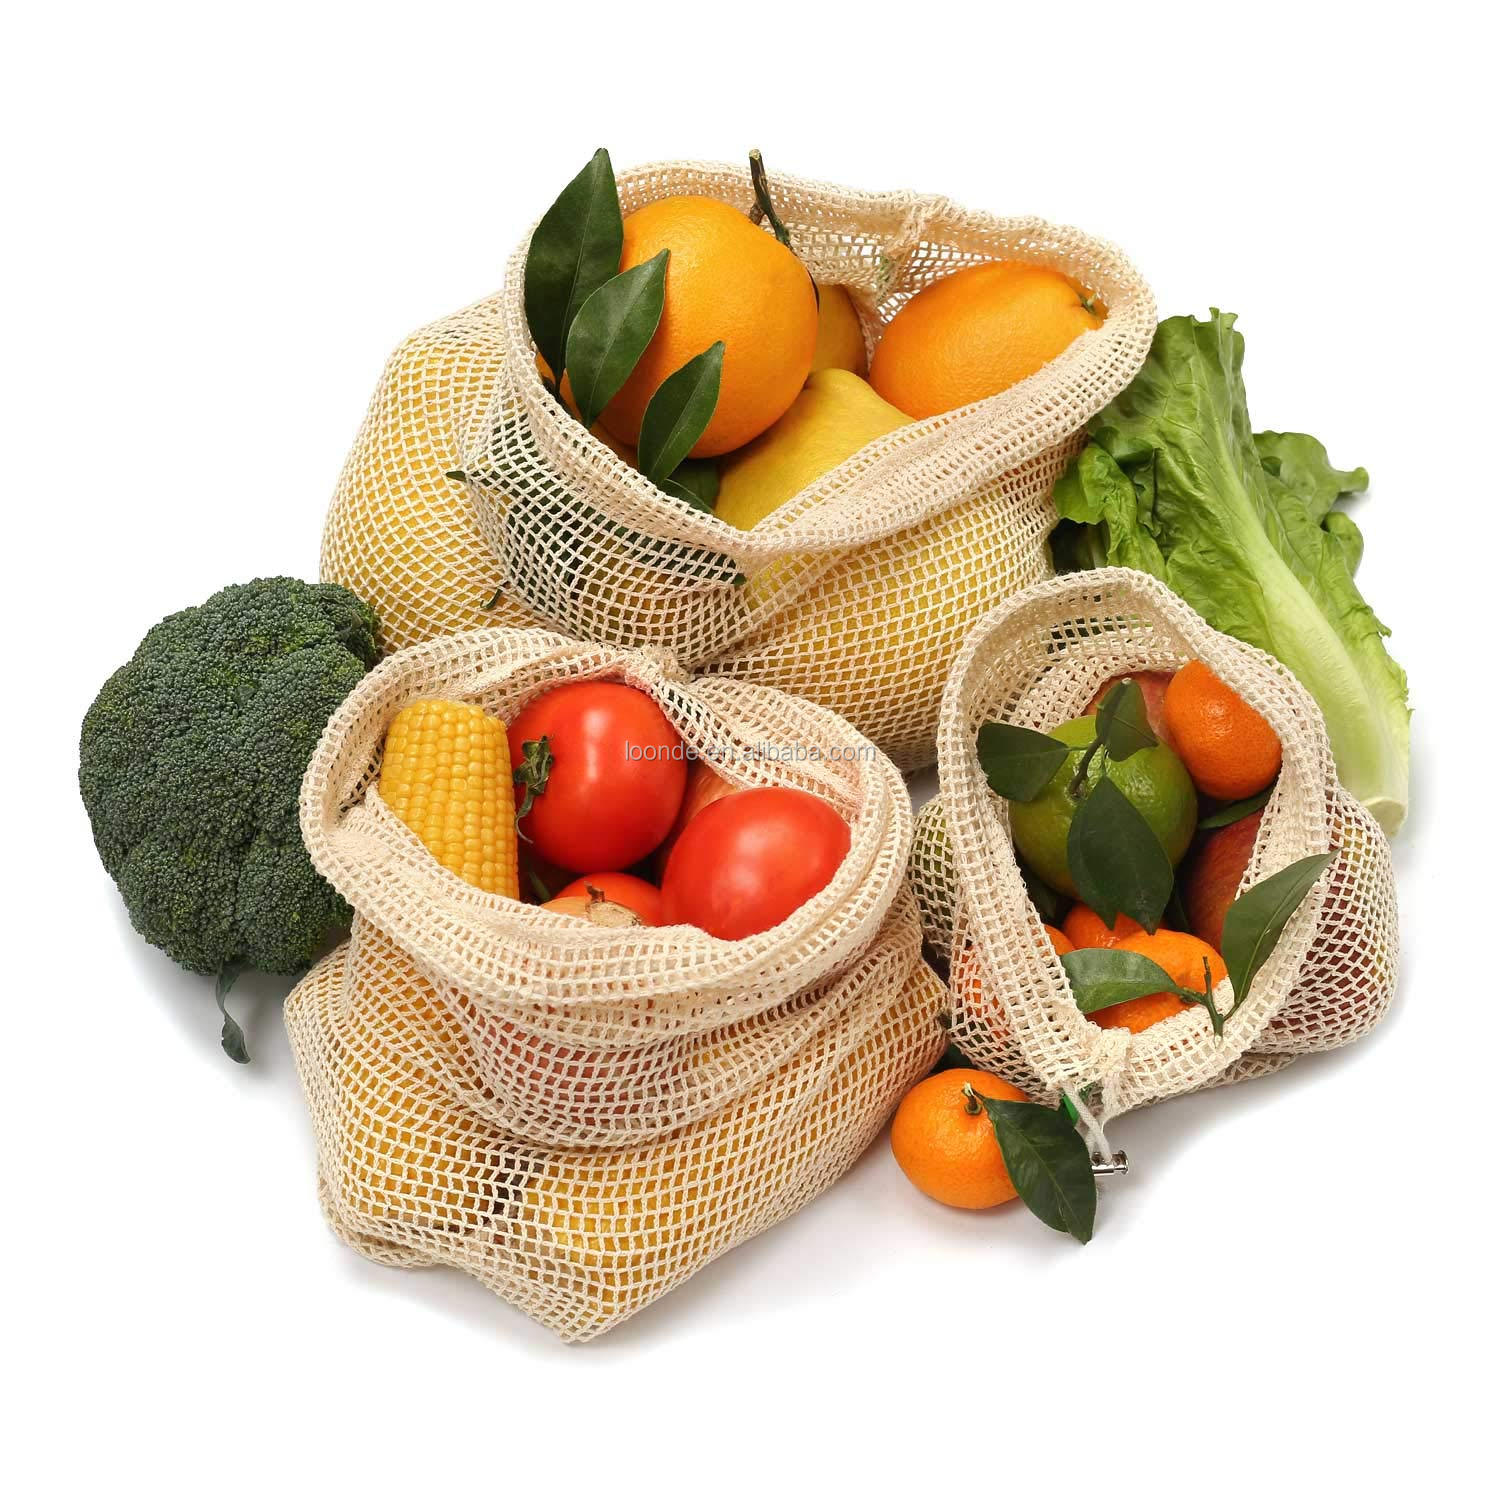 Cotton Reusable Grocery Bags Net String Shopping Bag Produce Bags Foldable Tote Set of 3 Short Handle